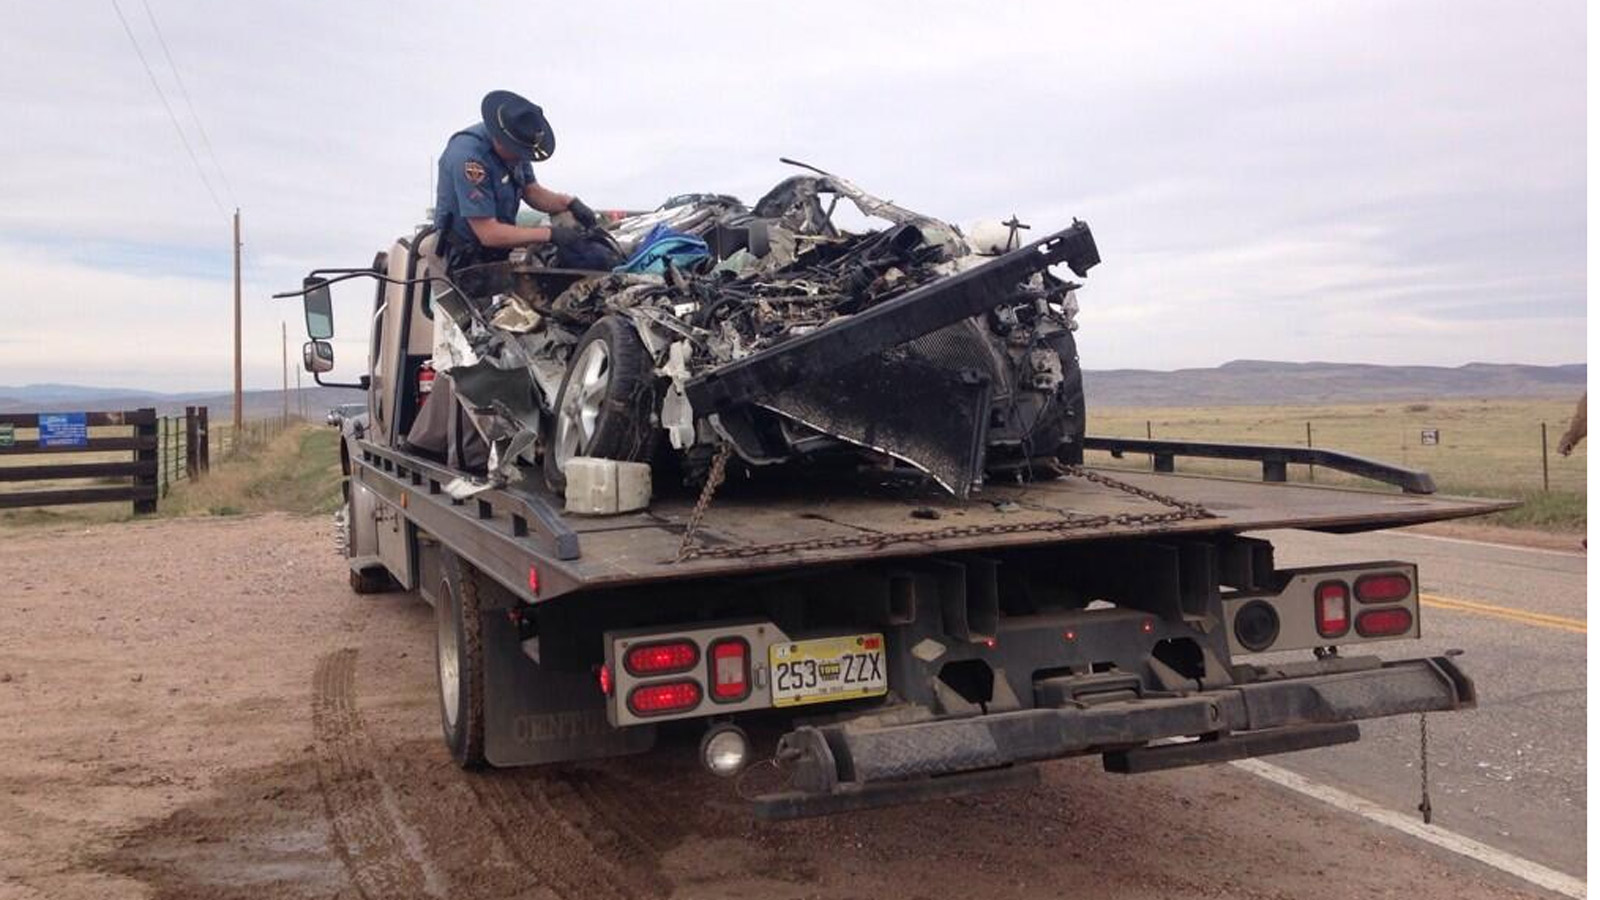 The car involved in the school bus crash in Larimer County after it was removed from under the bus. (credit: CBS)